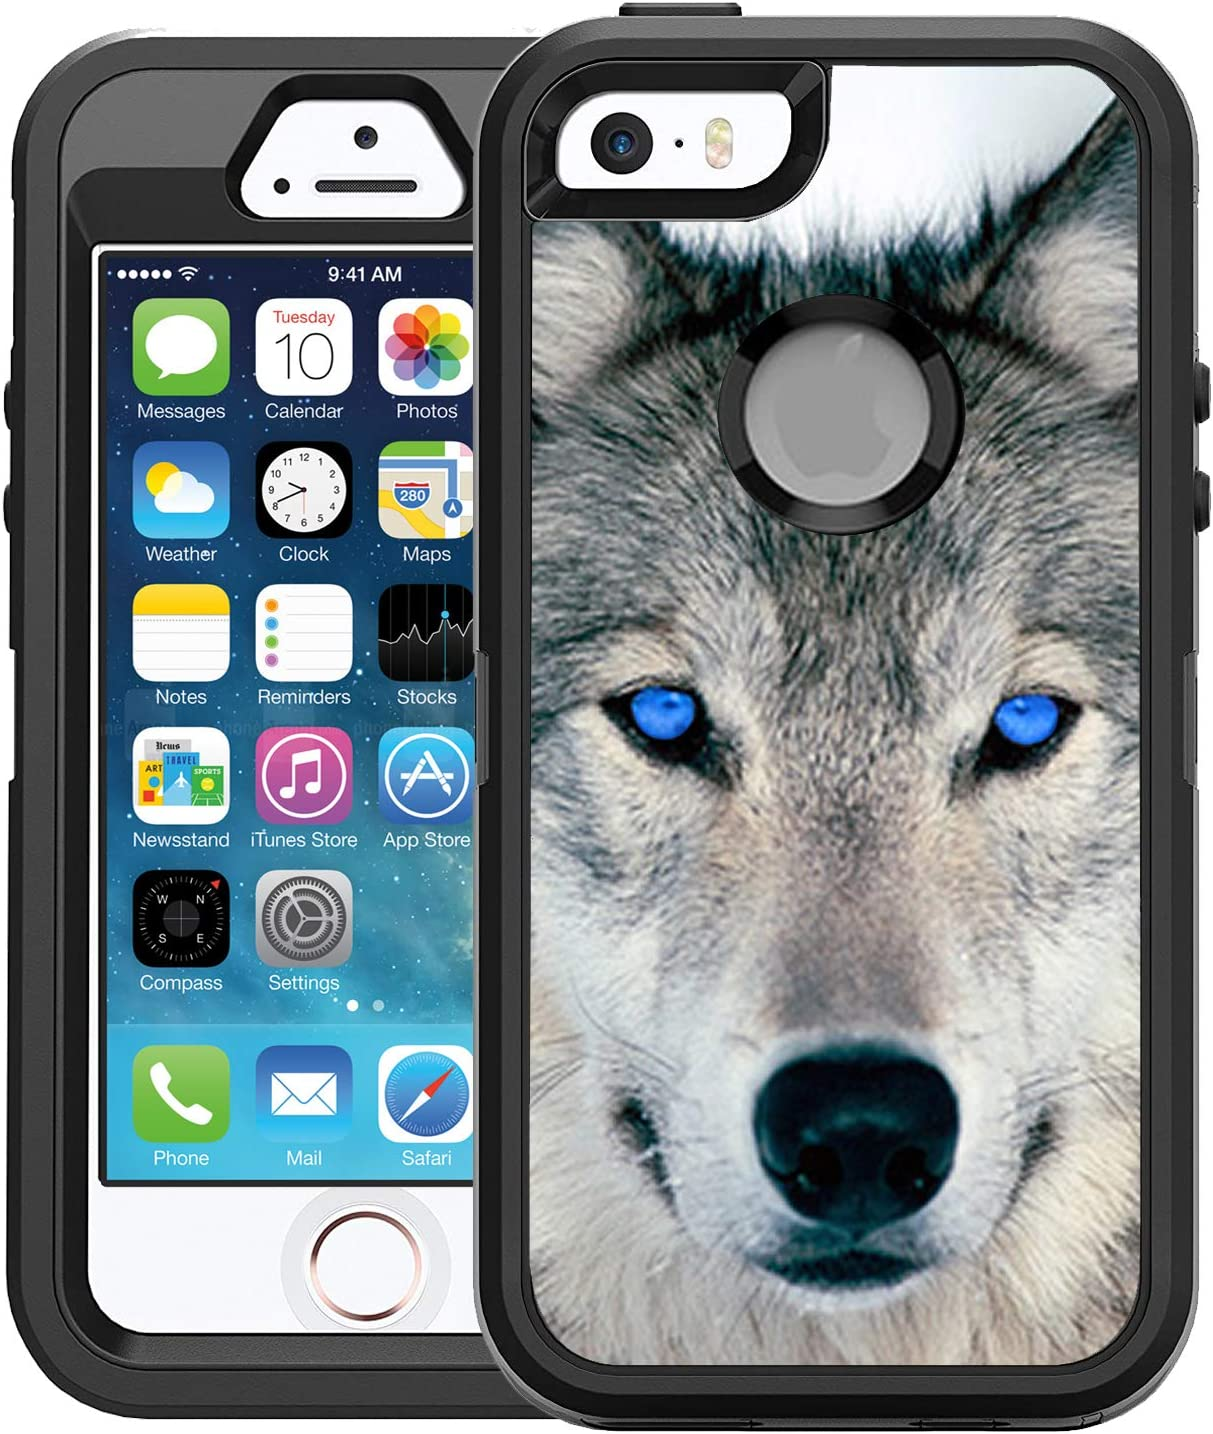 Teleskins Protective Designer Vinyl Skin Decals/Stickers Compatible with Otterbox Defender iPhone 5/5S/Se Case -Blue Eyed Wolf Face Wolves Design Patterns - only Skins and not Case